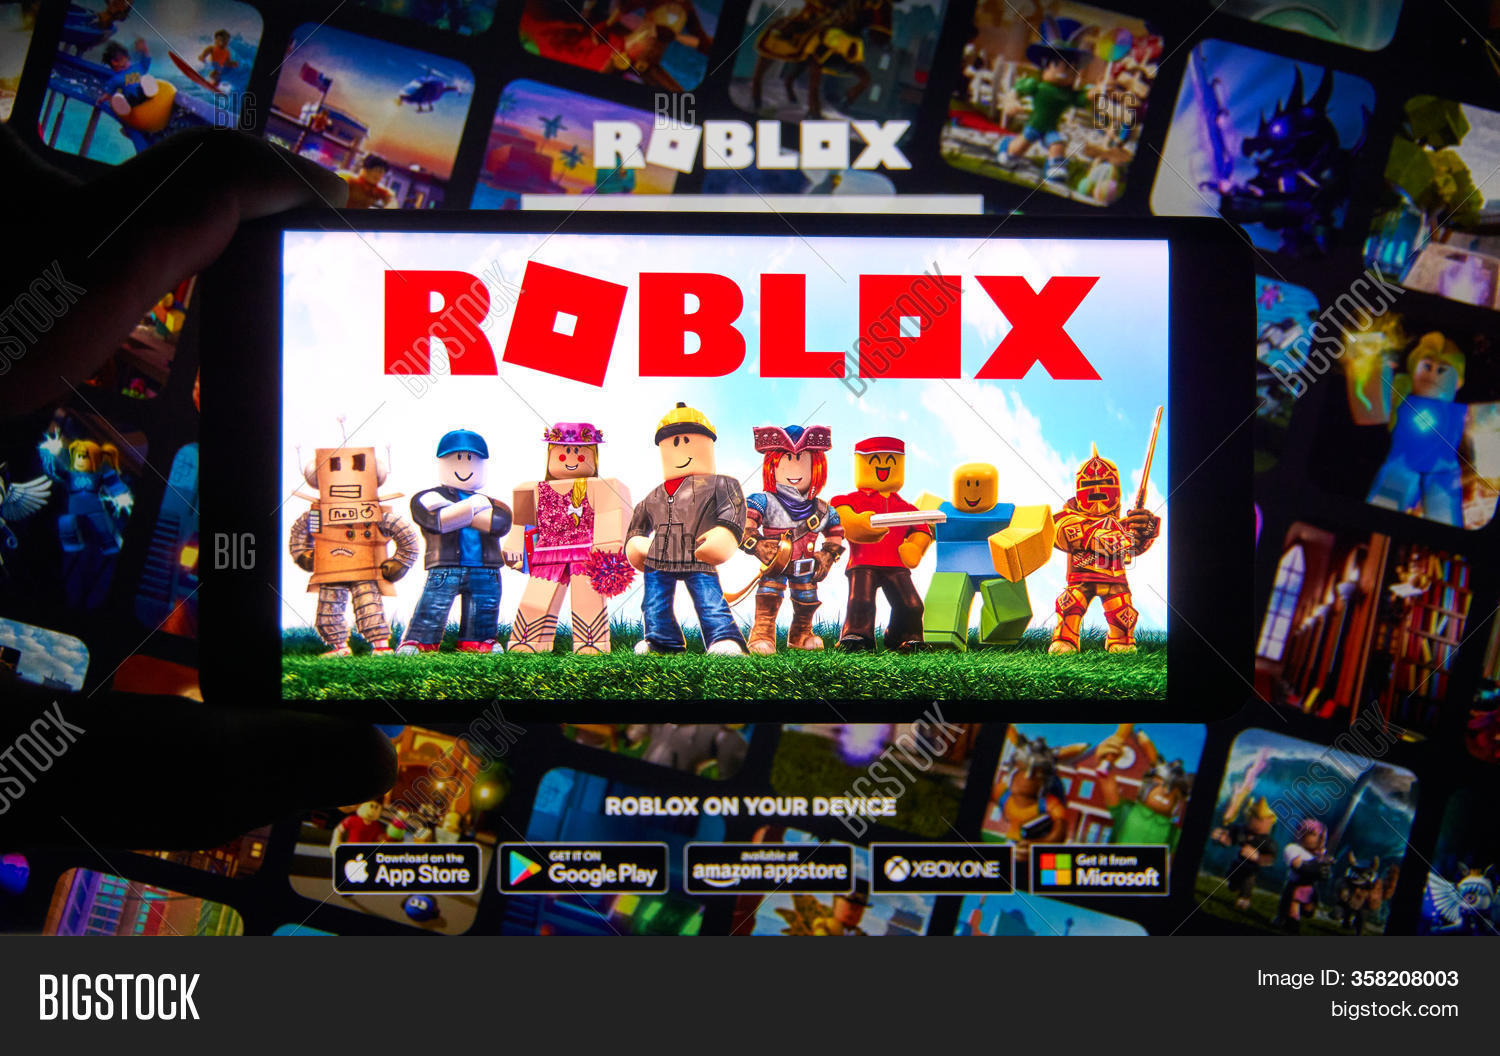 Roblox App Preview Video Montreal Canada Image Photo Free Trial Bigstock